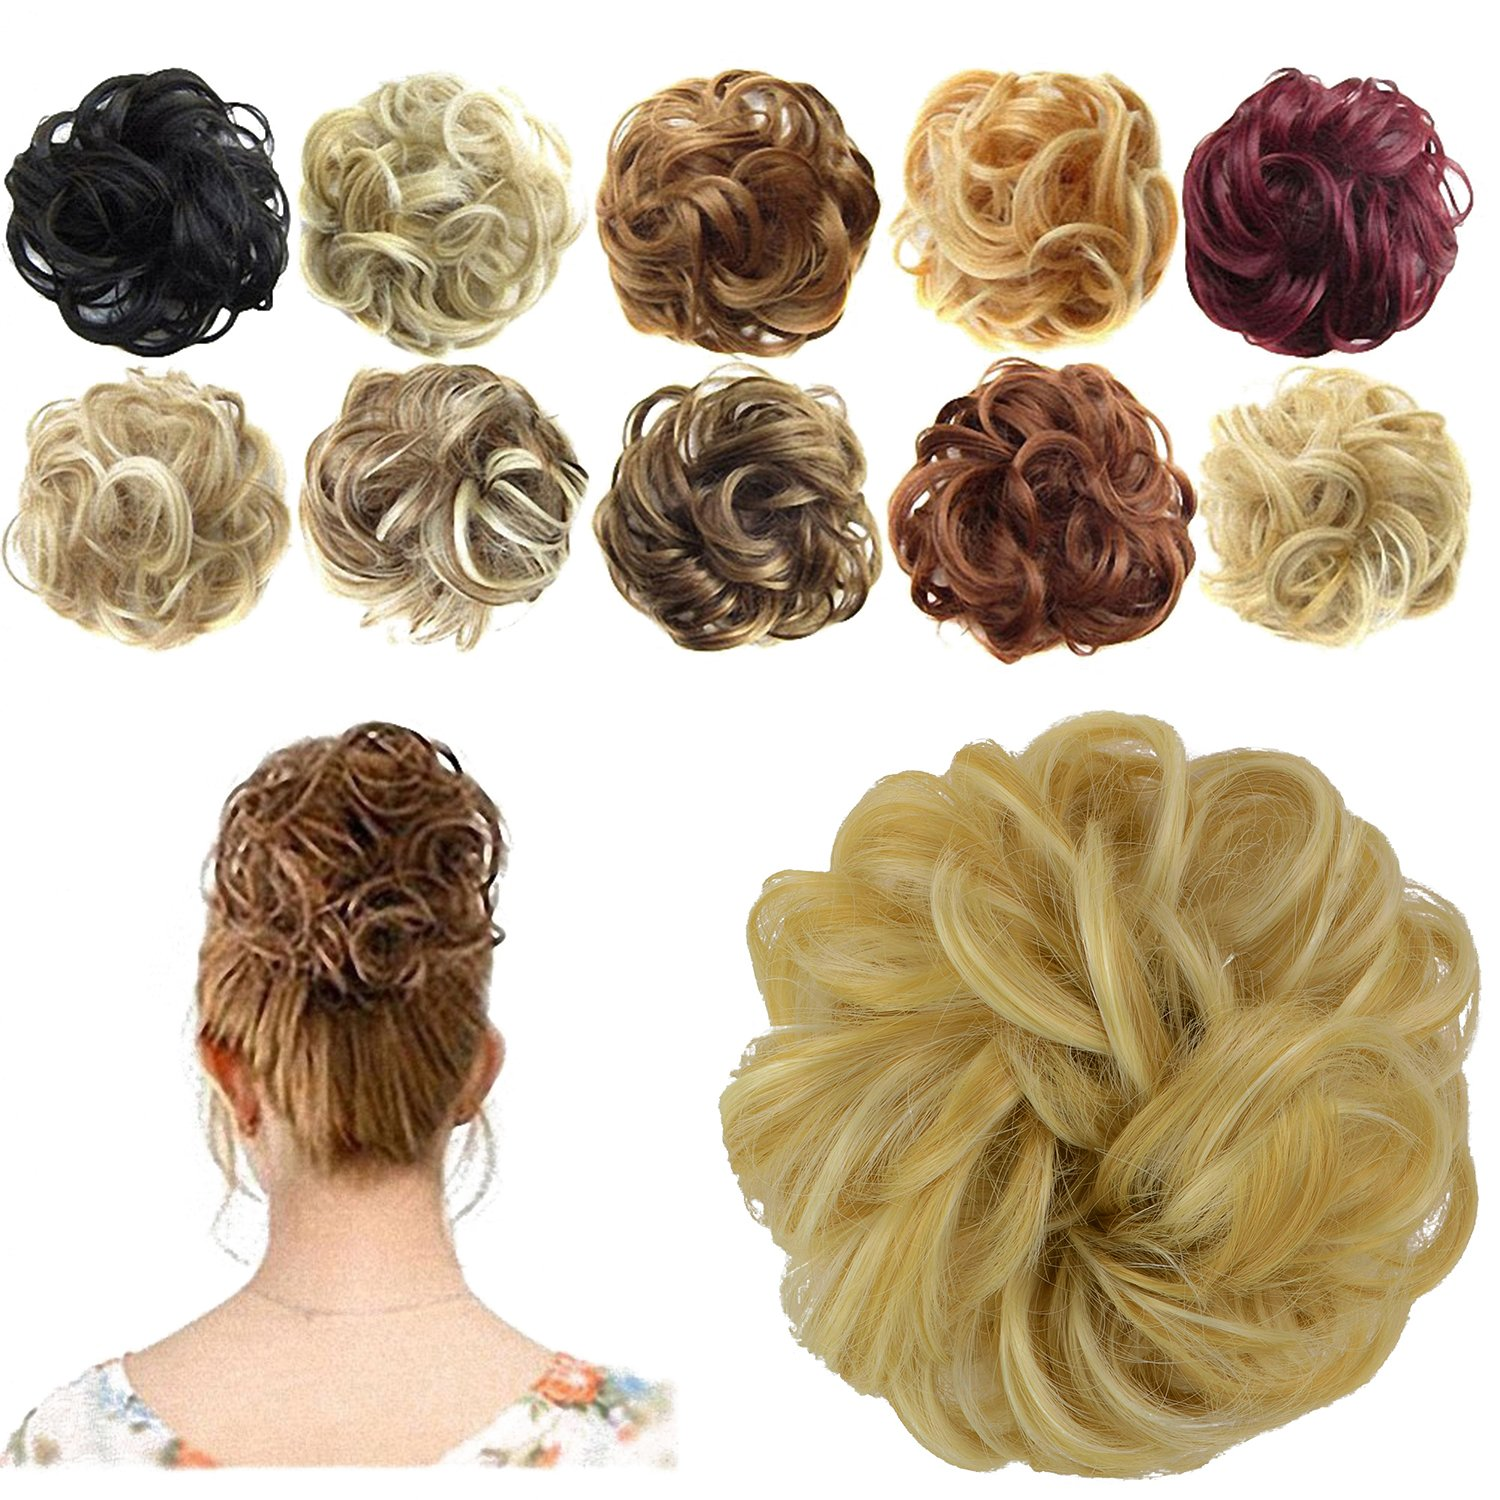 Feshfen Synthetic Hair Bun Extensions Messy Hair Scrunchies Hair Pieces For Women Hair Donut Updo Ponytail On Galleon Philippines